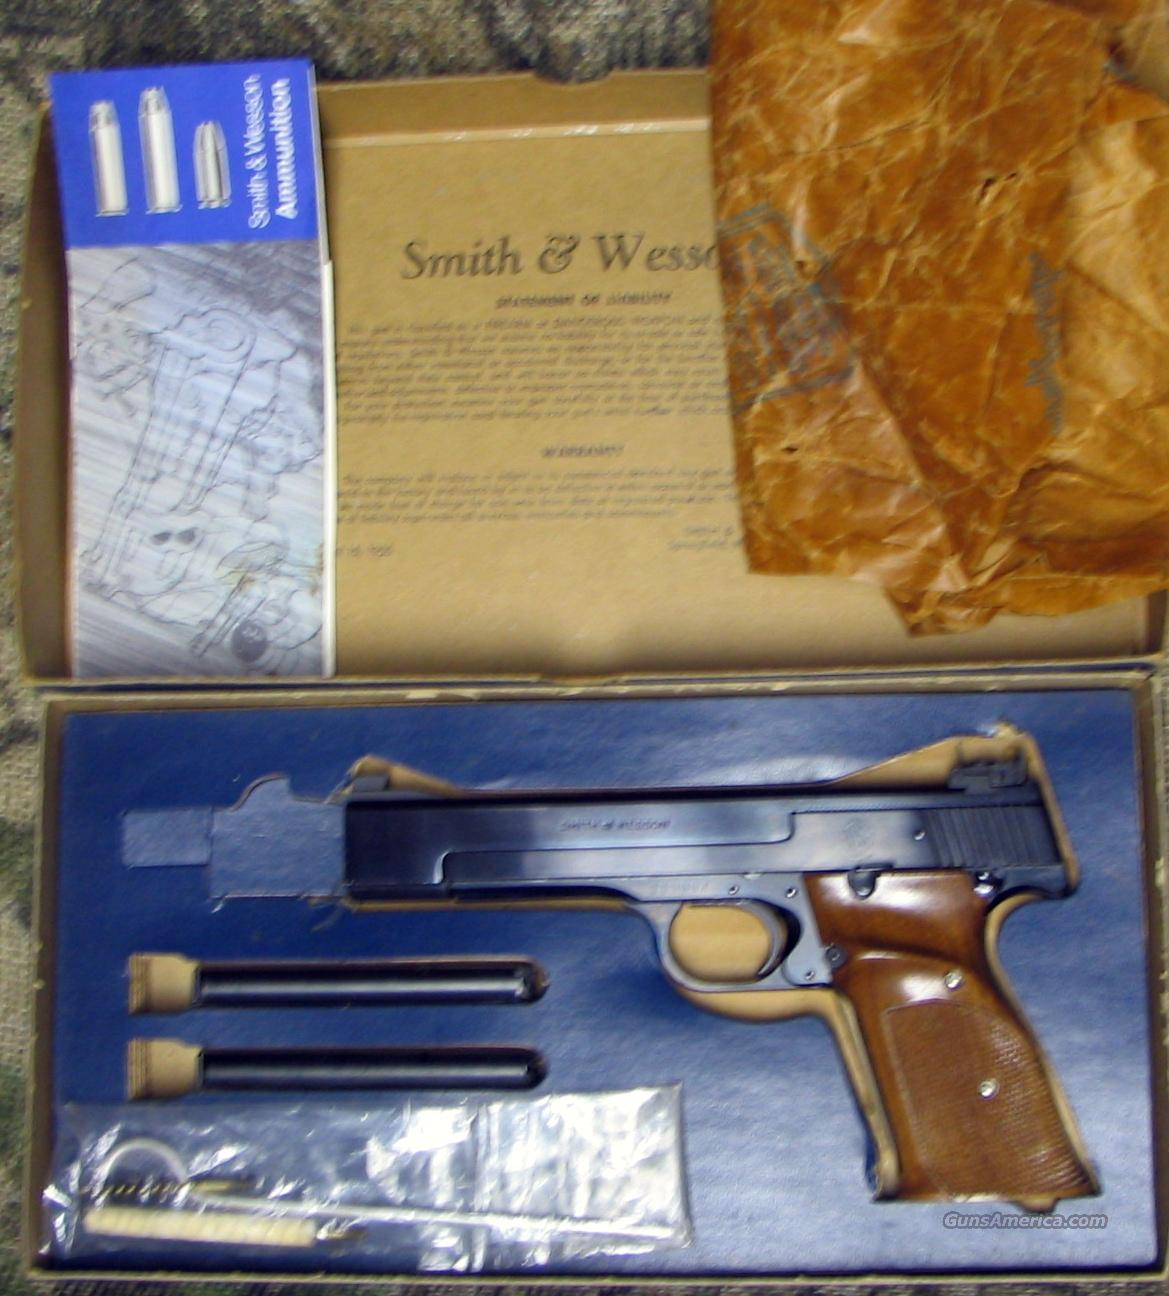 SMITH & WESSON Mod. 41 Pistol  Guns > Pistols > Smith & Wesson Pistols - Autos > Steel Frame